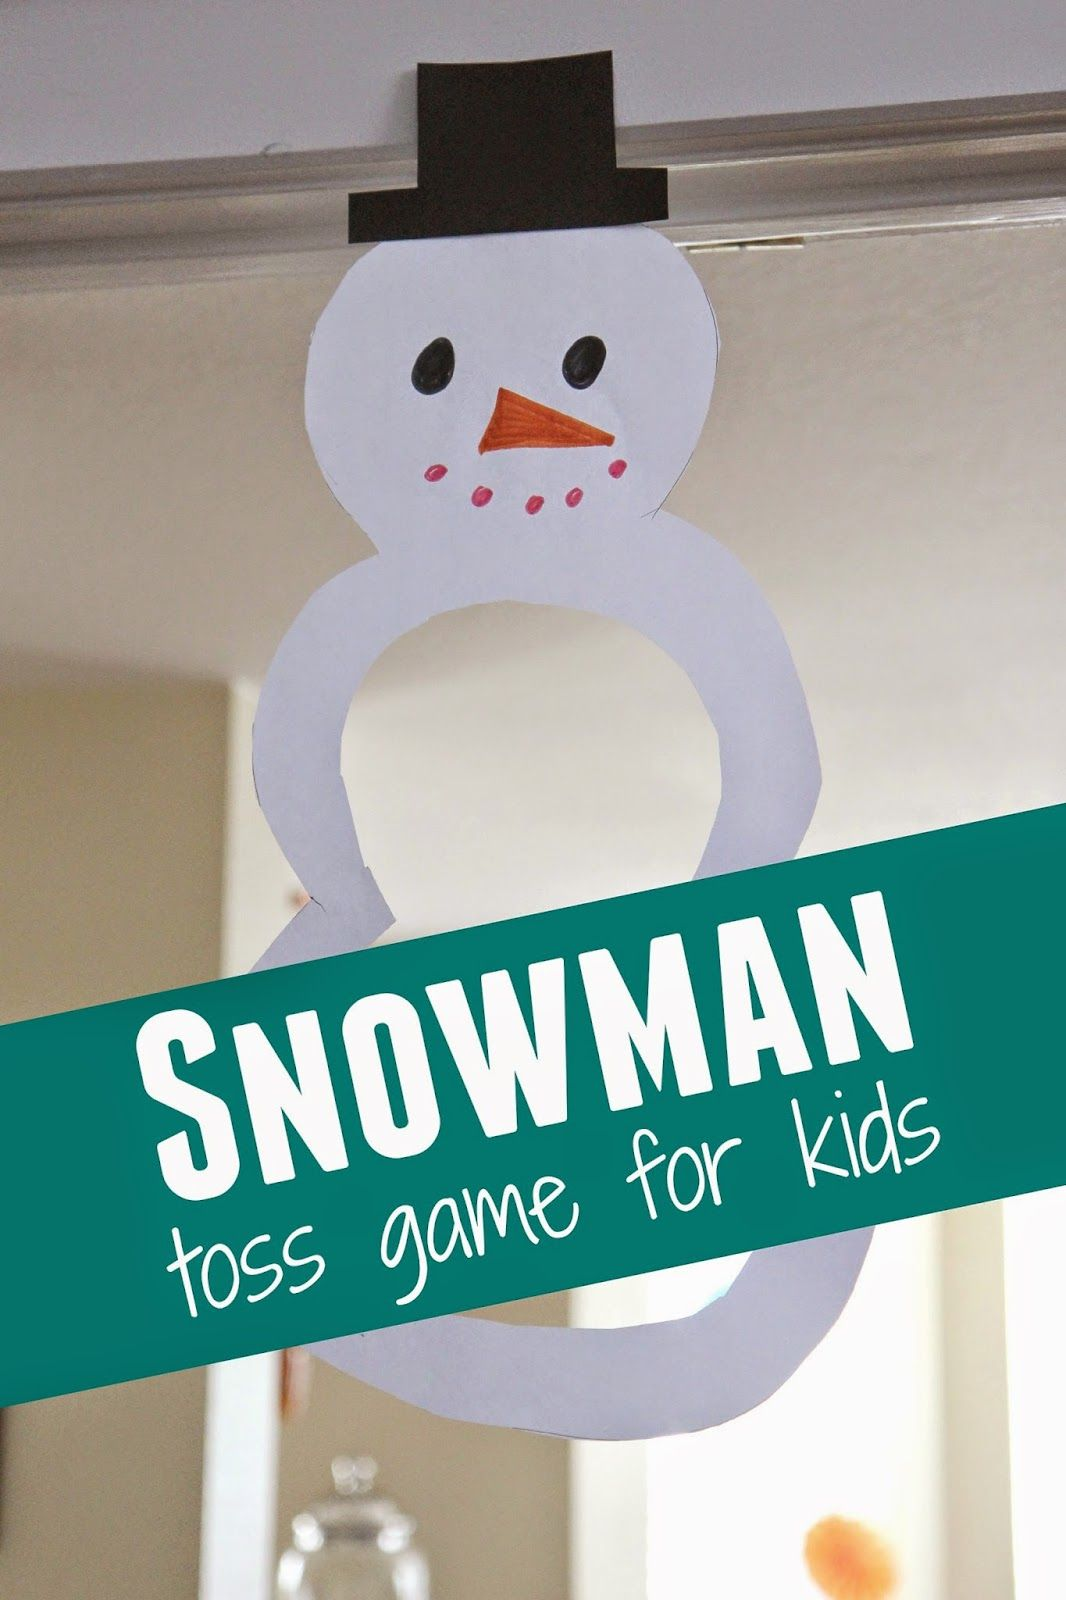 Snowman Toss Game For Kids Toddler Approved